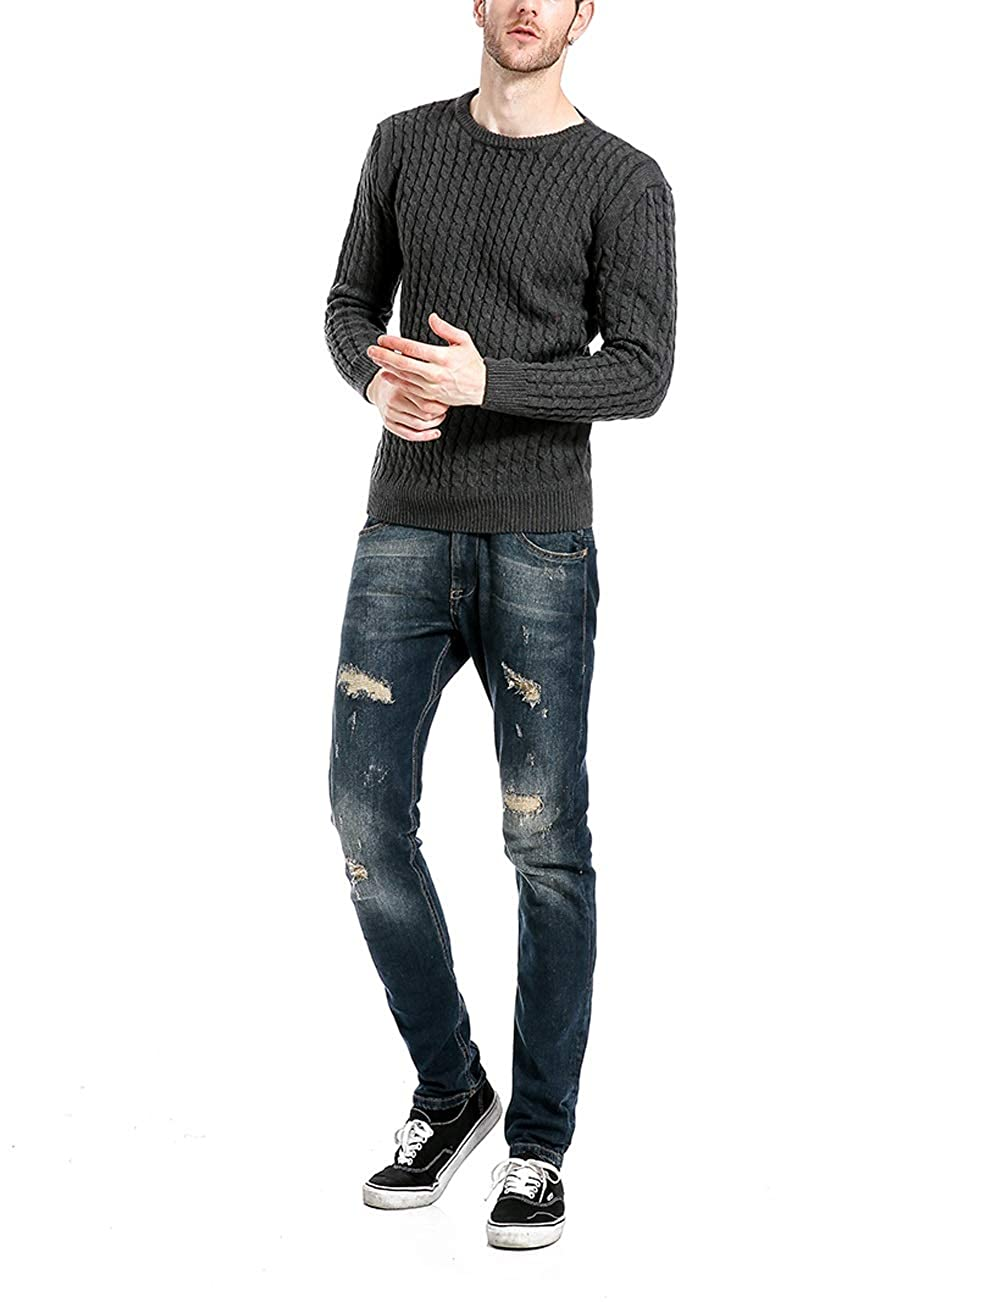 MAZORT Mens Long Sleeve Crew Neck Cable Pullover Sweater Slim Fit Knitwear